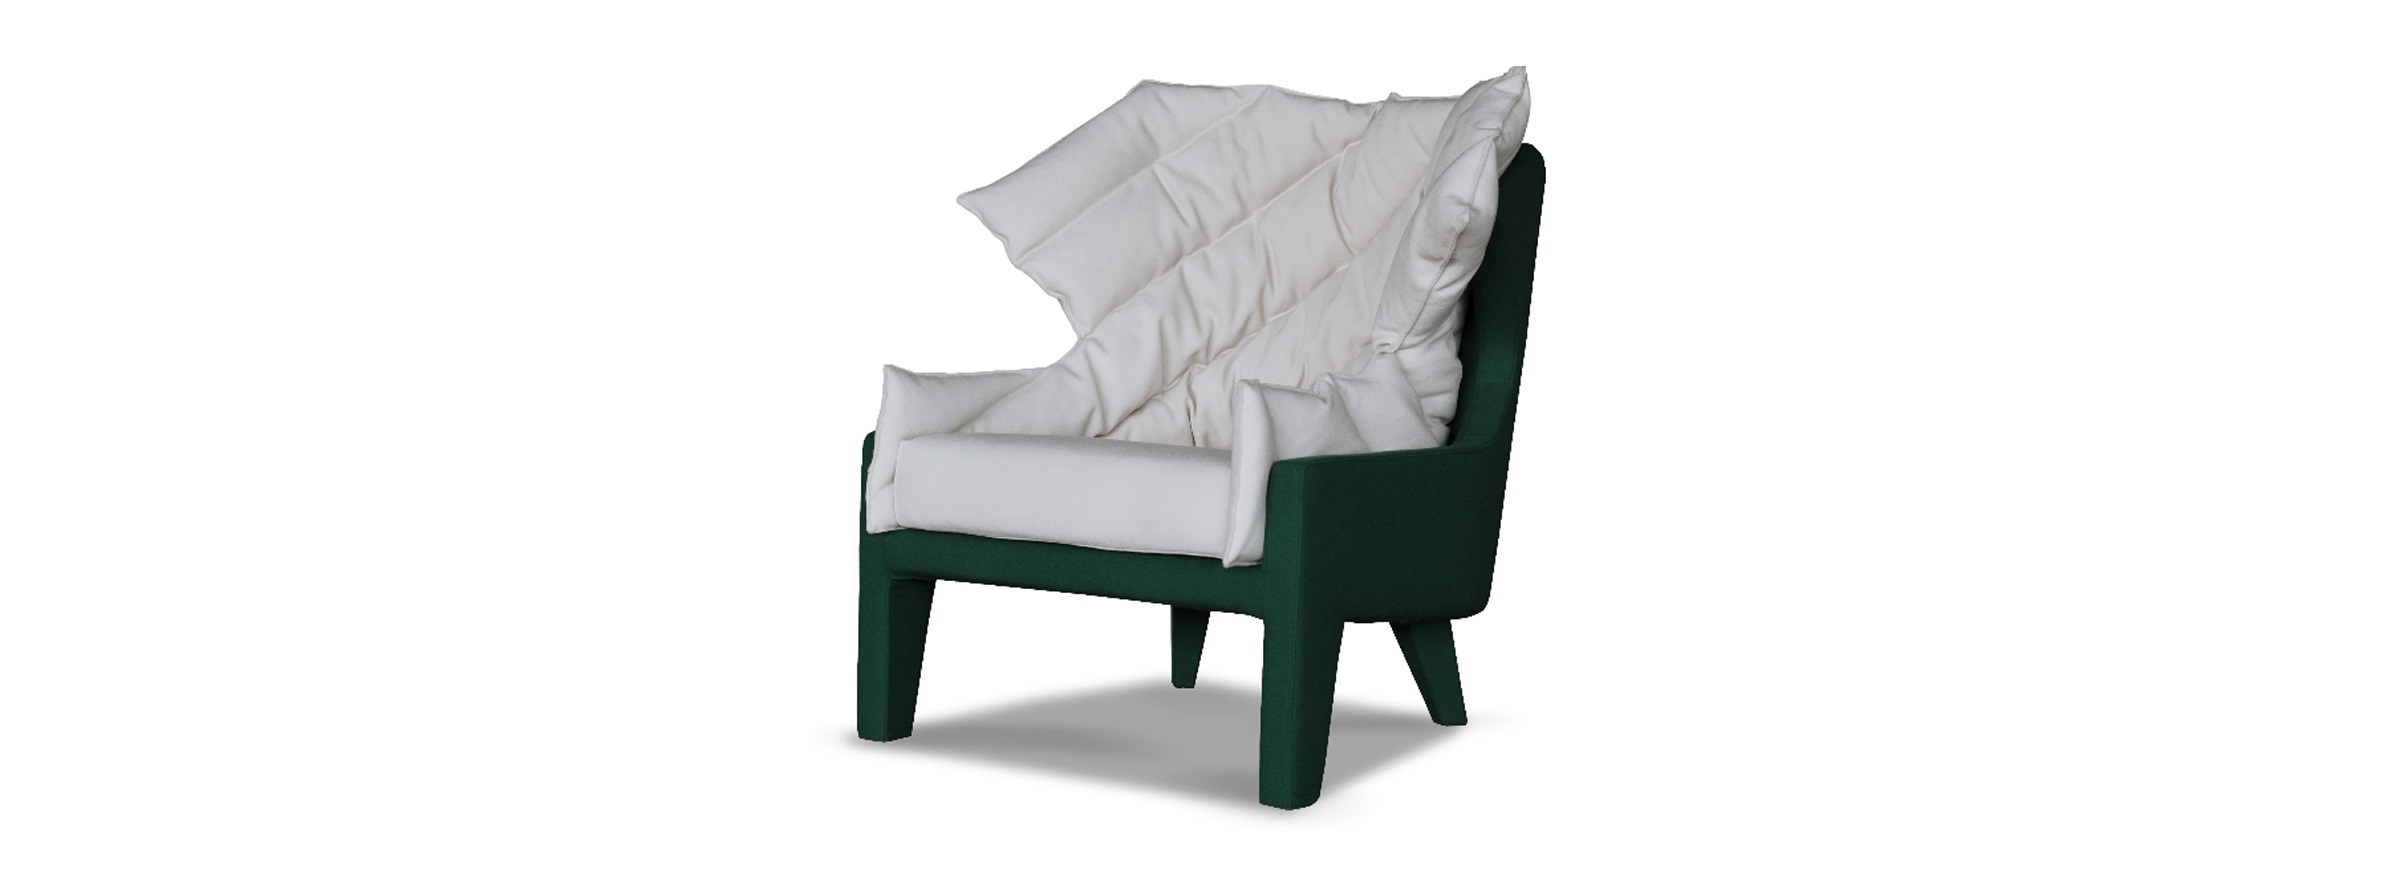 Désio-TWIST-fauteuil-personnalisable-made-in-france-tissu-architecte